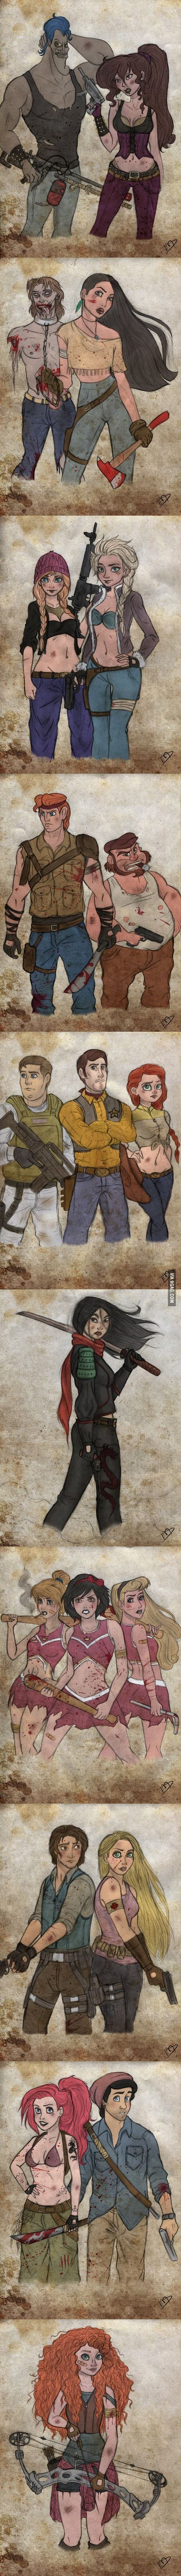 The Walking Disney Dead... can we take a minute to examine the difference between male clothes and female clothes?: